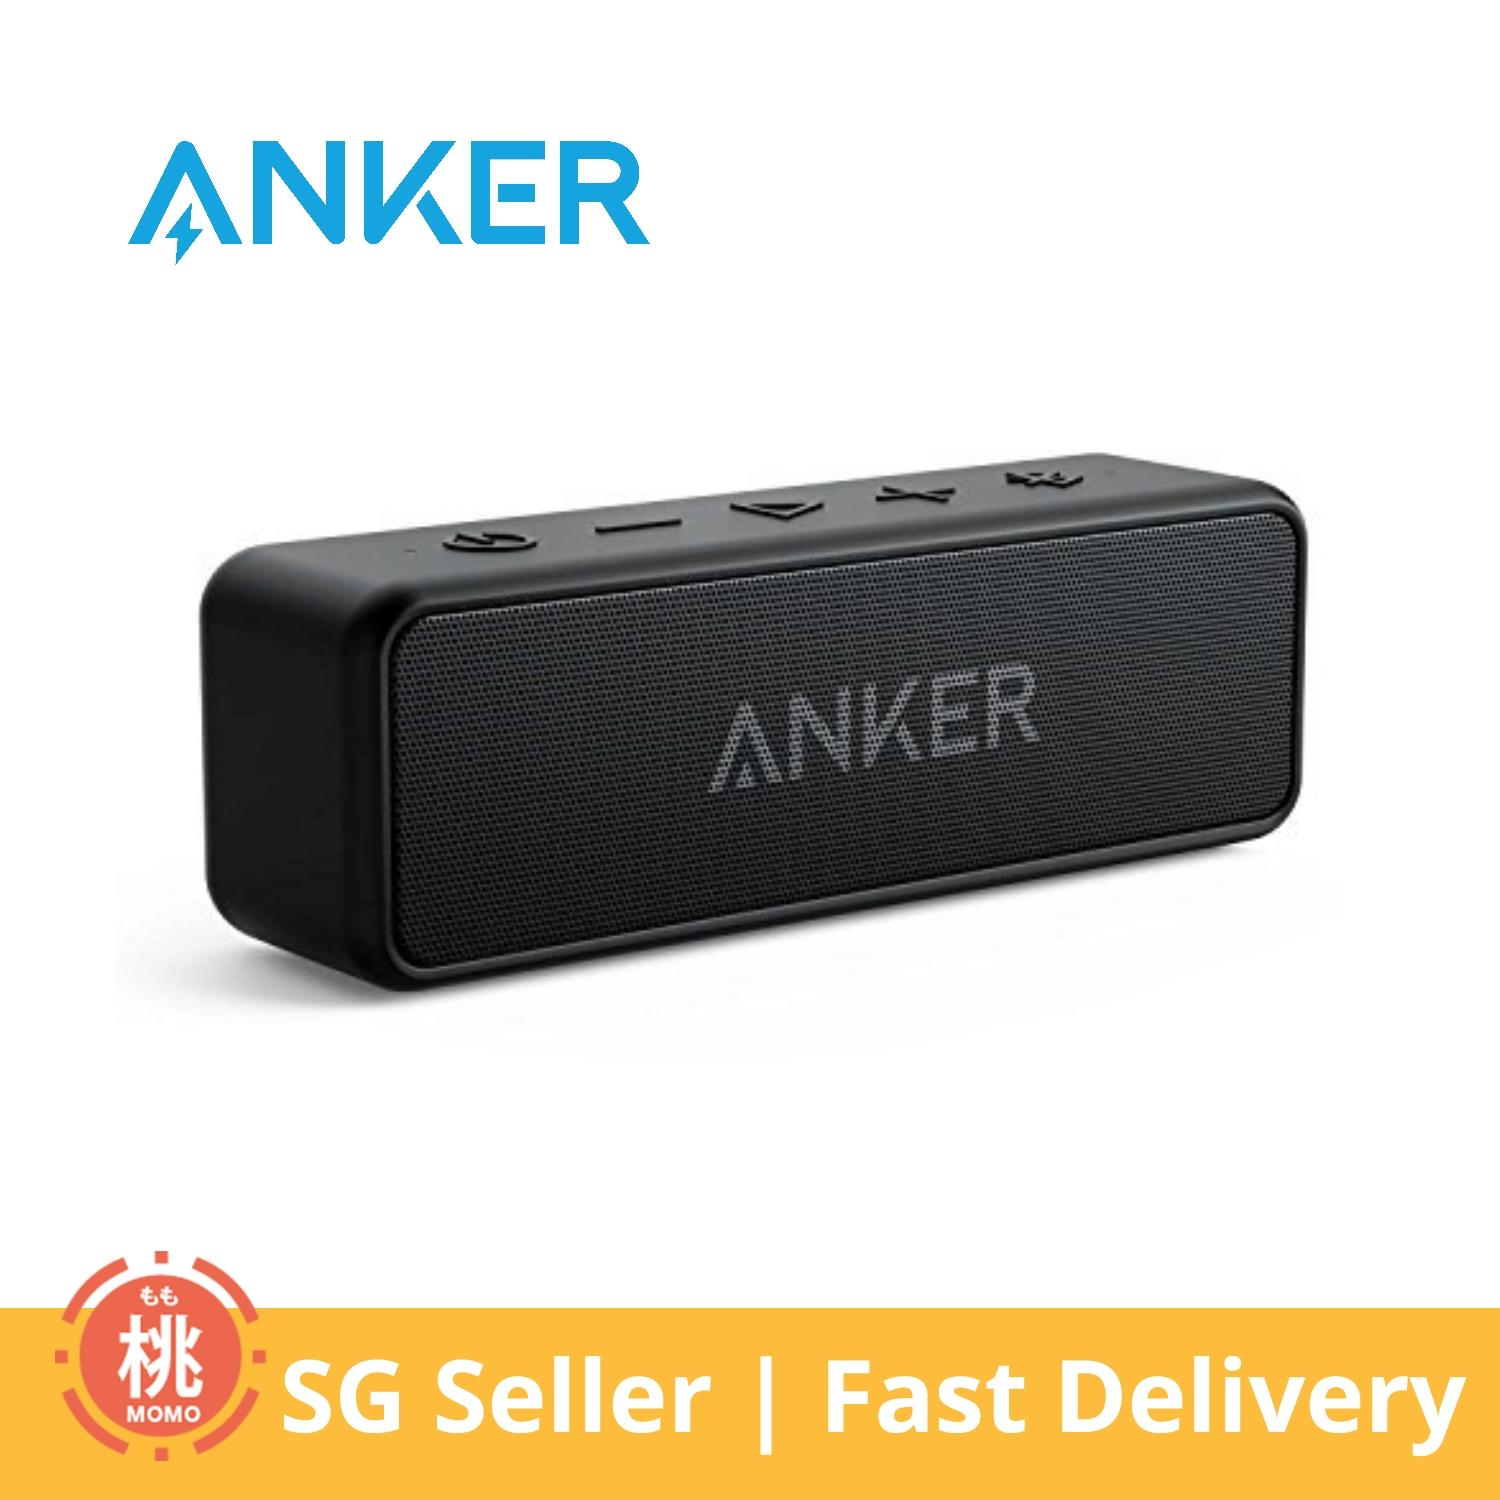 Anker Soundcore 2 Portable Bluetooth Speaker With Superior Stereo Sound, Exclusive Bassup, 12-Watts, Ipx5 Water-Resistant, 24-Hour Playtime By Momo Accessories.